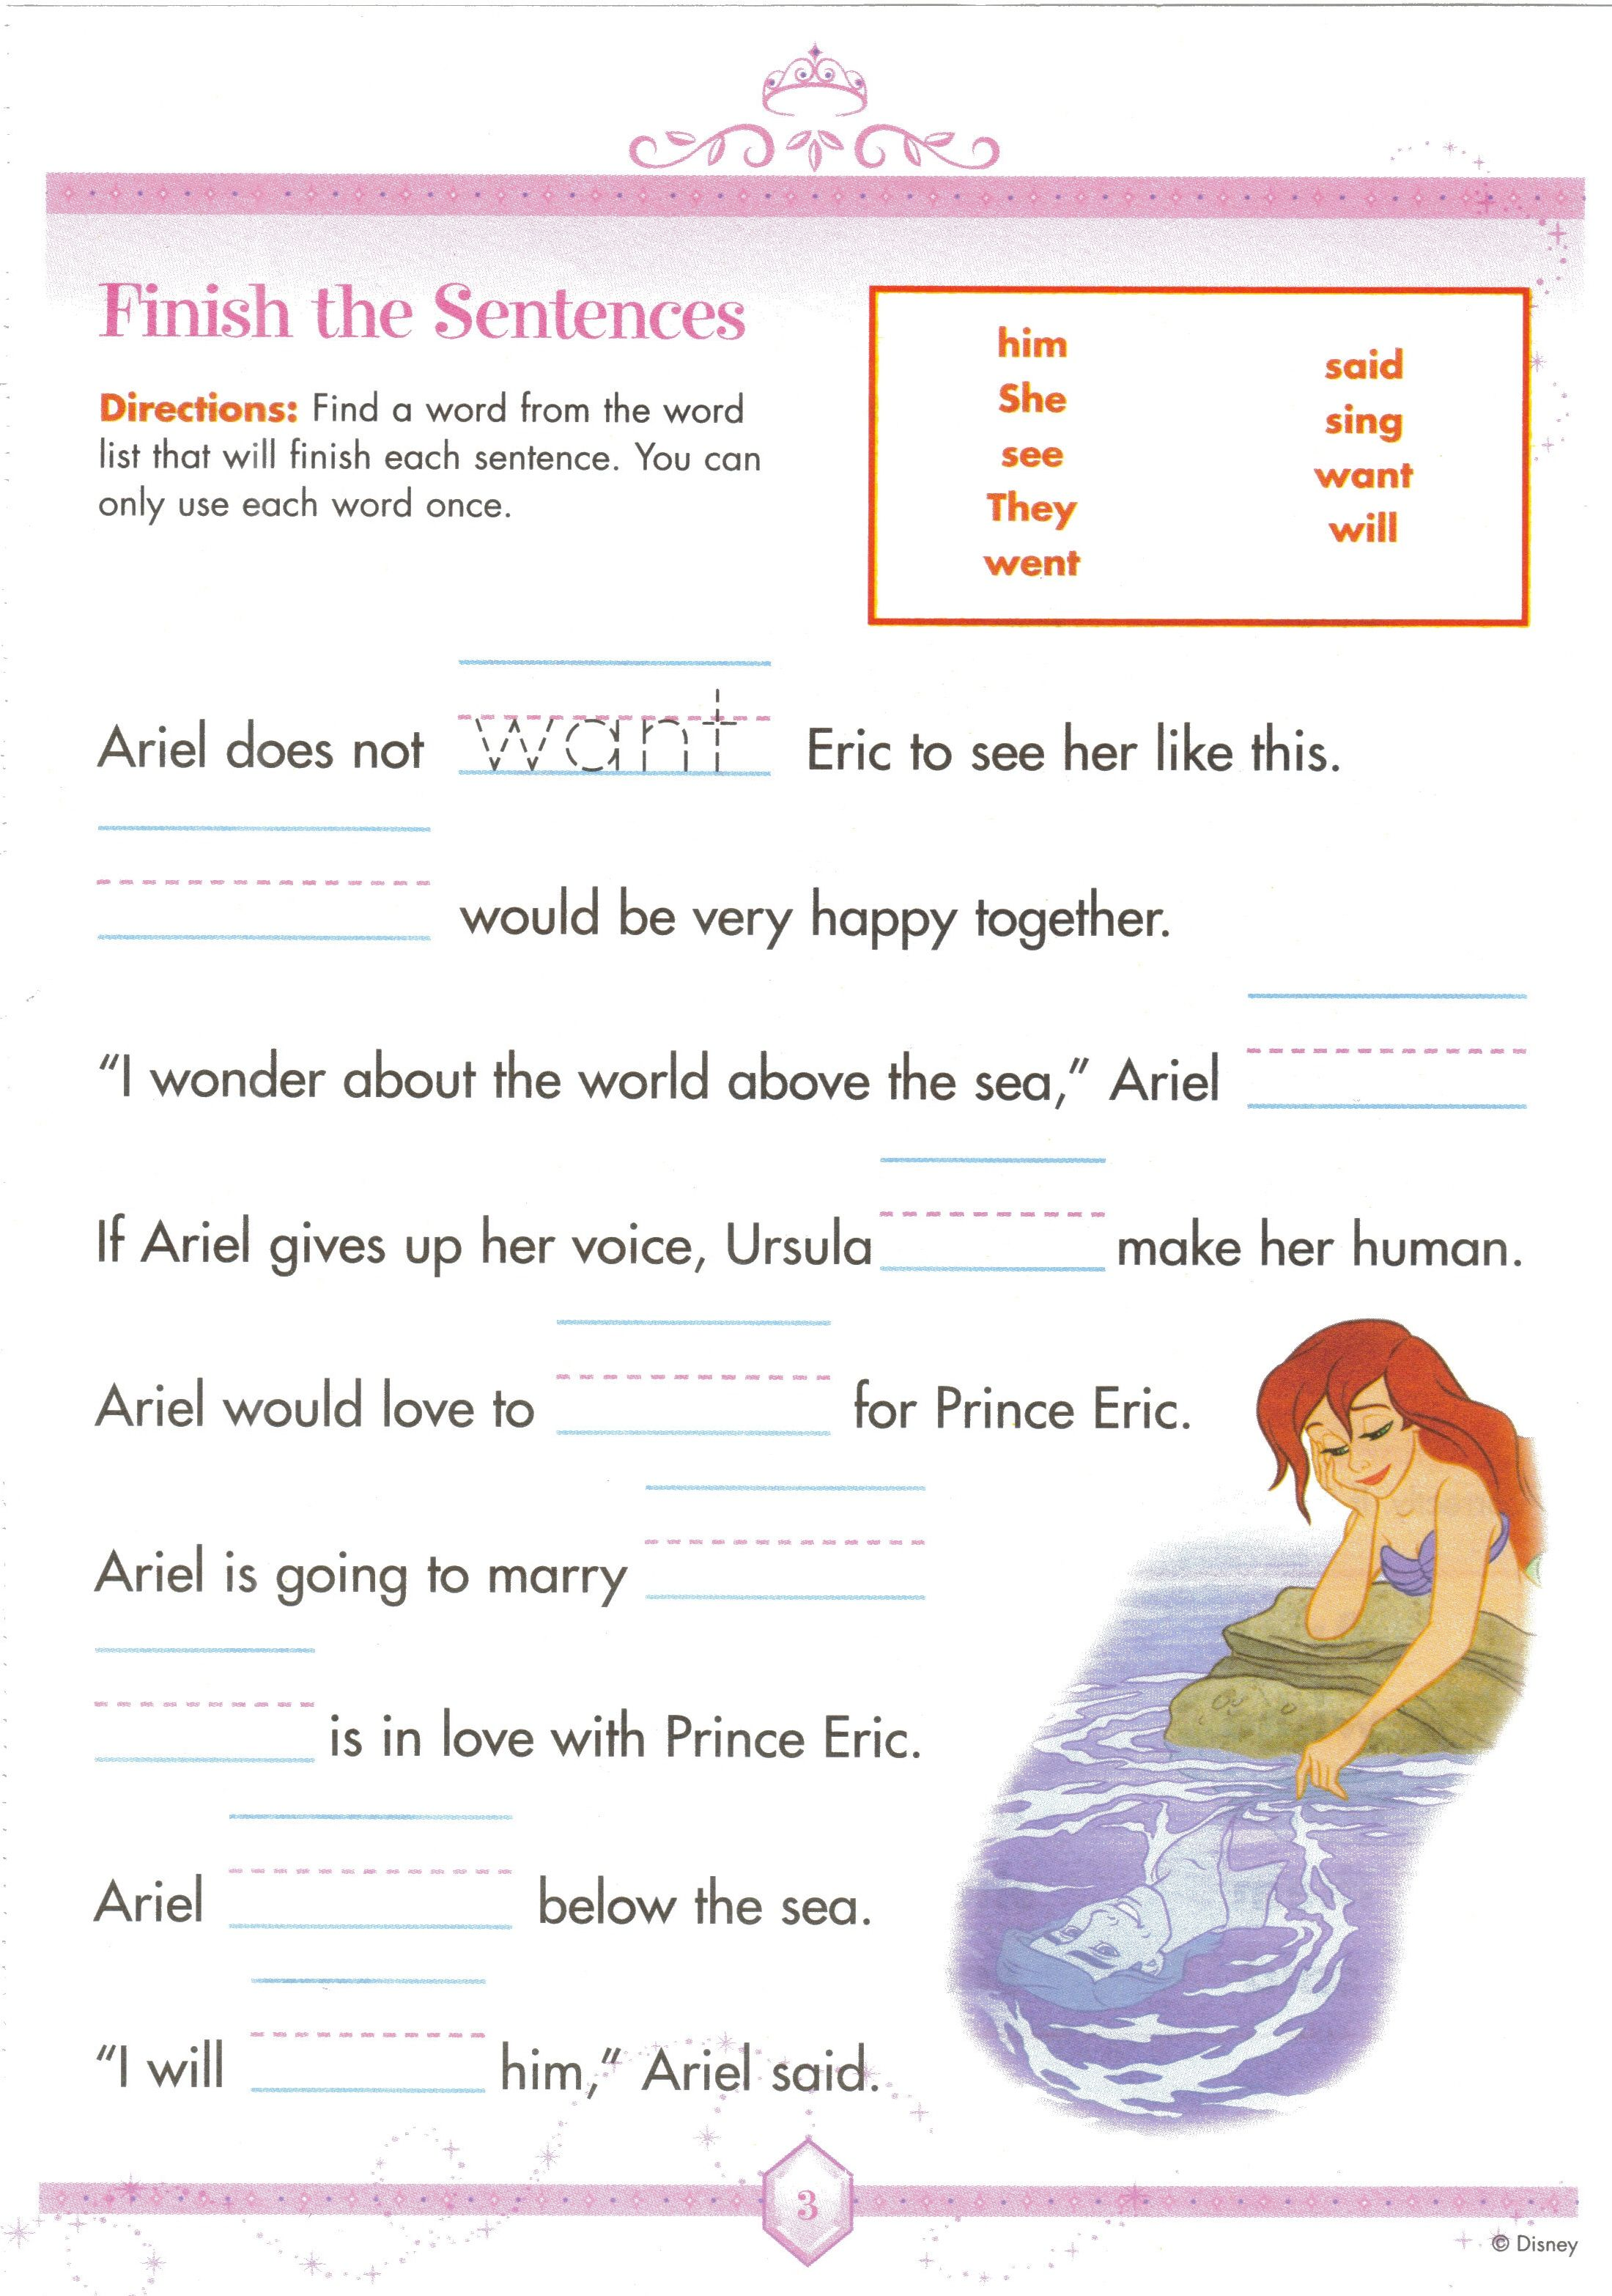 Proatmealus  Outstanding  Images About Worksheets On Pinterest  Fun Facts For Kids  With Outstanding  Images About Worksheets On Pinterest  Fun Facts For Kids Earth Day Worksheets And Jungles With Nice Rote Counting Worksheets Also Nonfiction Text Features Worksheet Nd Grade In Addition Childrens Worksheets And Fun Kids Worksheets As Well As Free Printable Alphabet Worksheets For Preschoolers Additionally Linear Function Worksheets From Pinterestcom With Proatmealus  Outstanding  Images About Worksheets On Pinterest  Fun Facts For Kids  With Nice  Images About Worksheets On Pinterest  Fun Facts For Kids Earth Day Worksheets And Jungles And Outstanding Rote Counting Worksheets Also Nonfiction Text Features Worksheet Nd Grade In Addition Childrens Worksheets From Pinterestcom